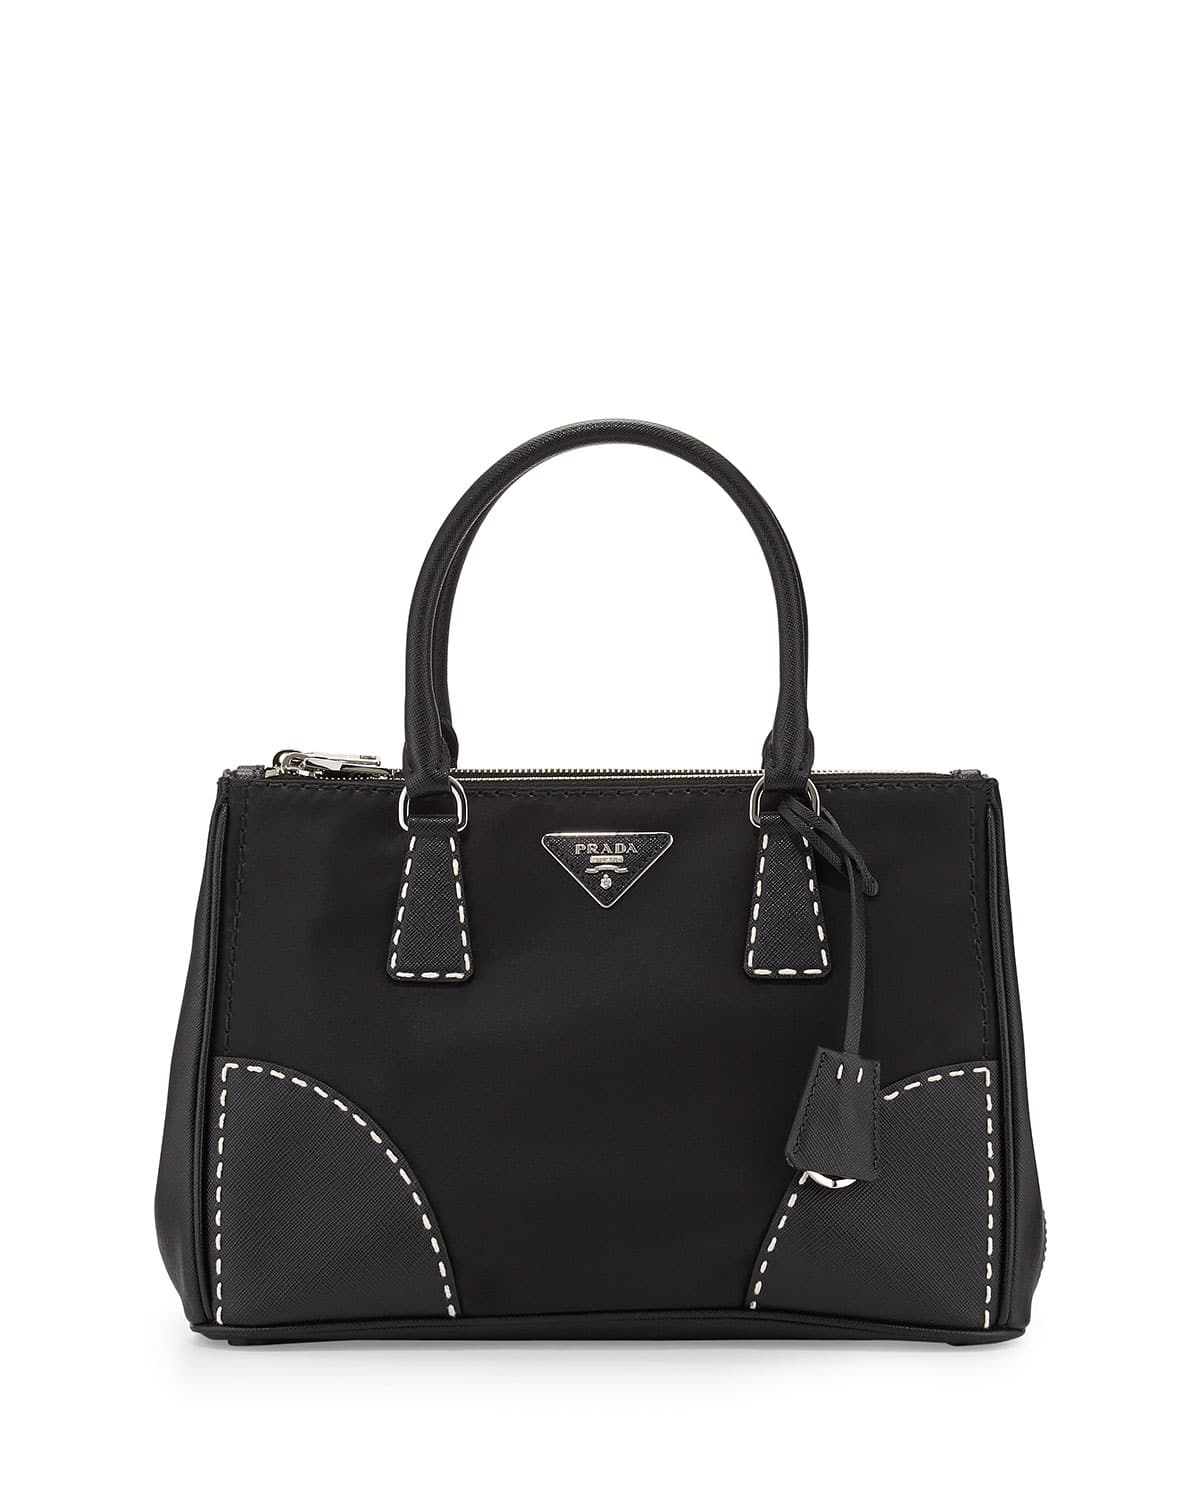 Prada Nylon Bag Collection 2015